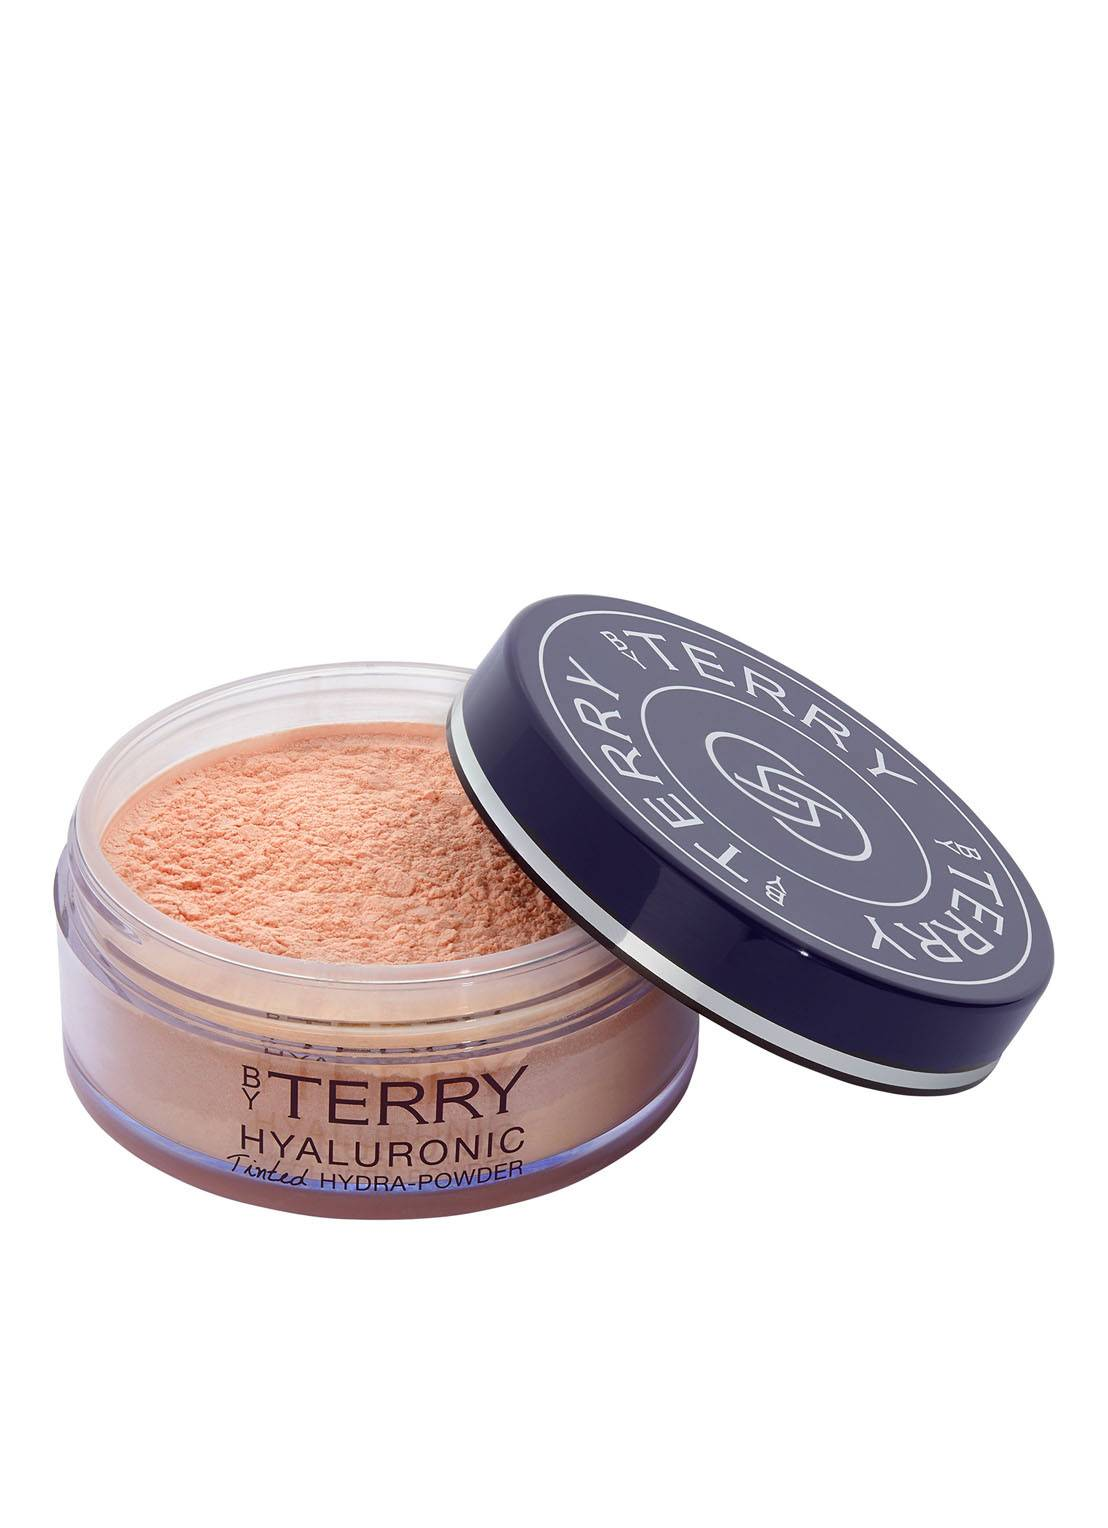 by terry Hyaluronic Tinted Hydra Powder - poudre libre - N2. Apricot Light